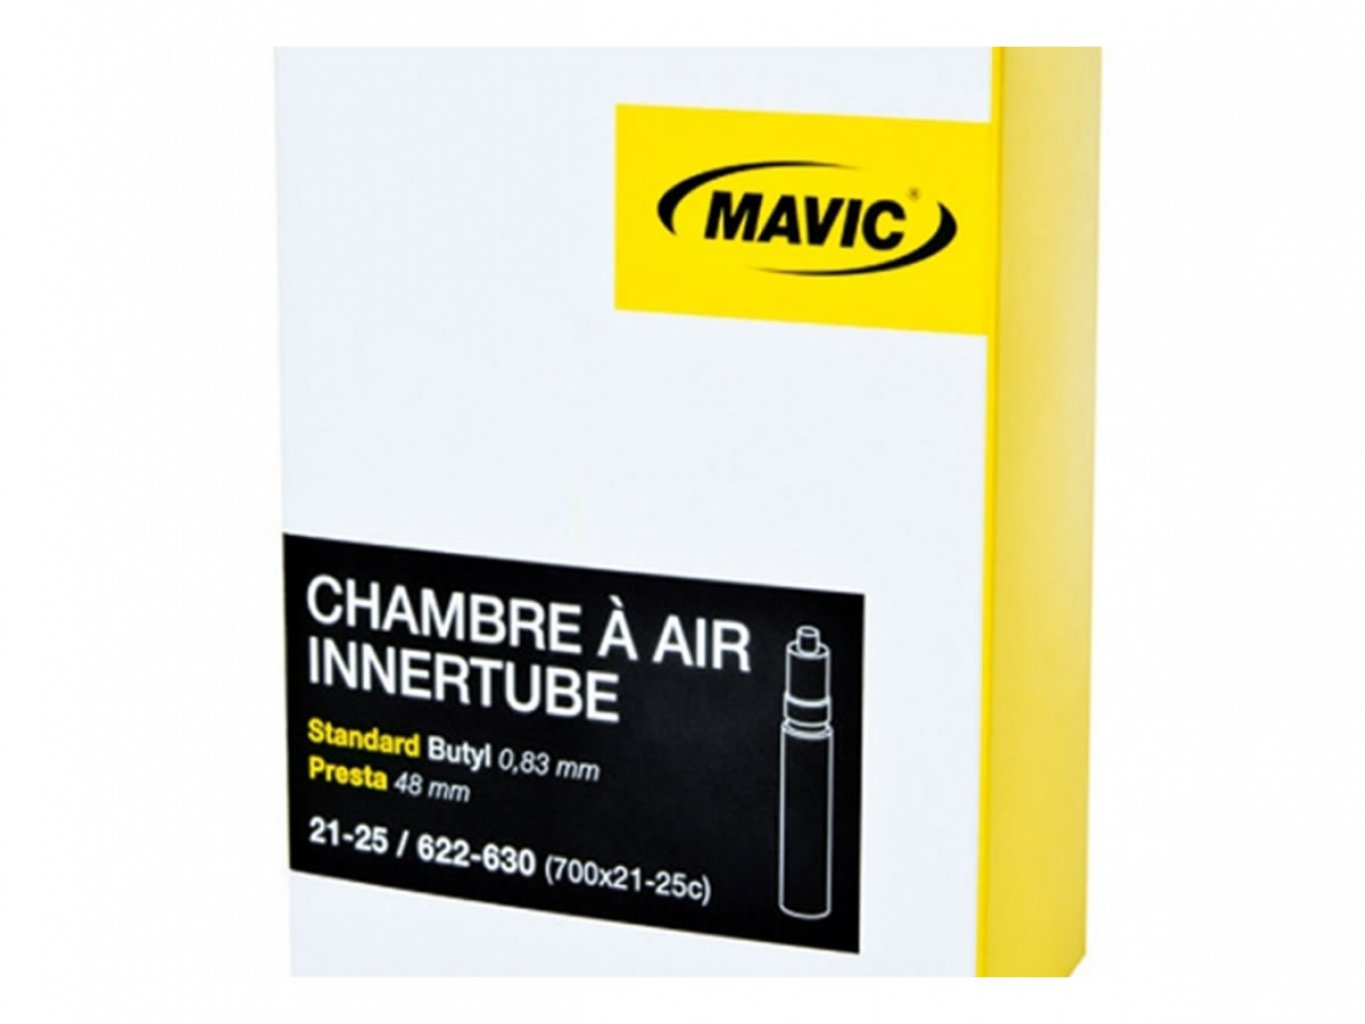 Mavic valve de 60 mm